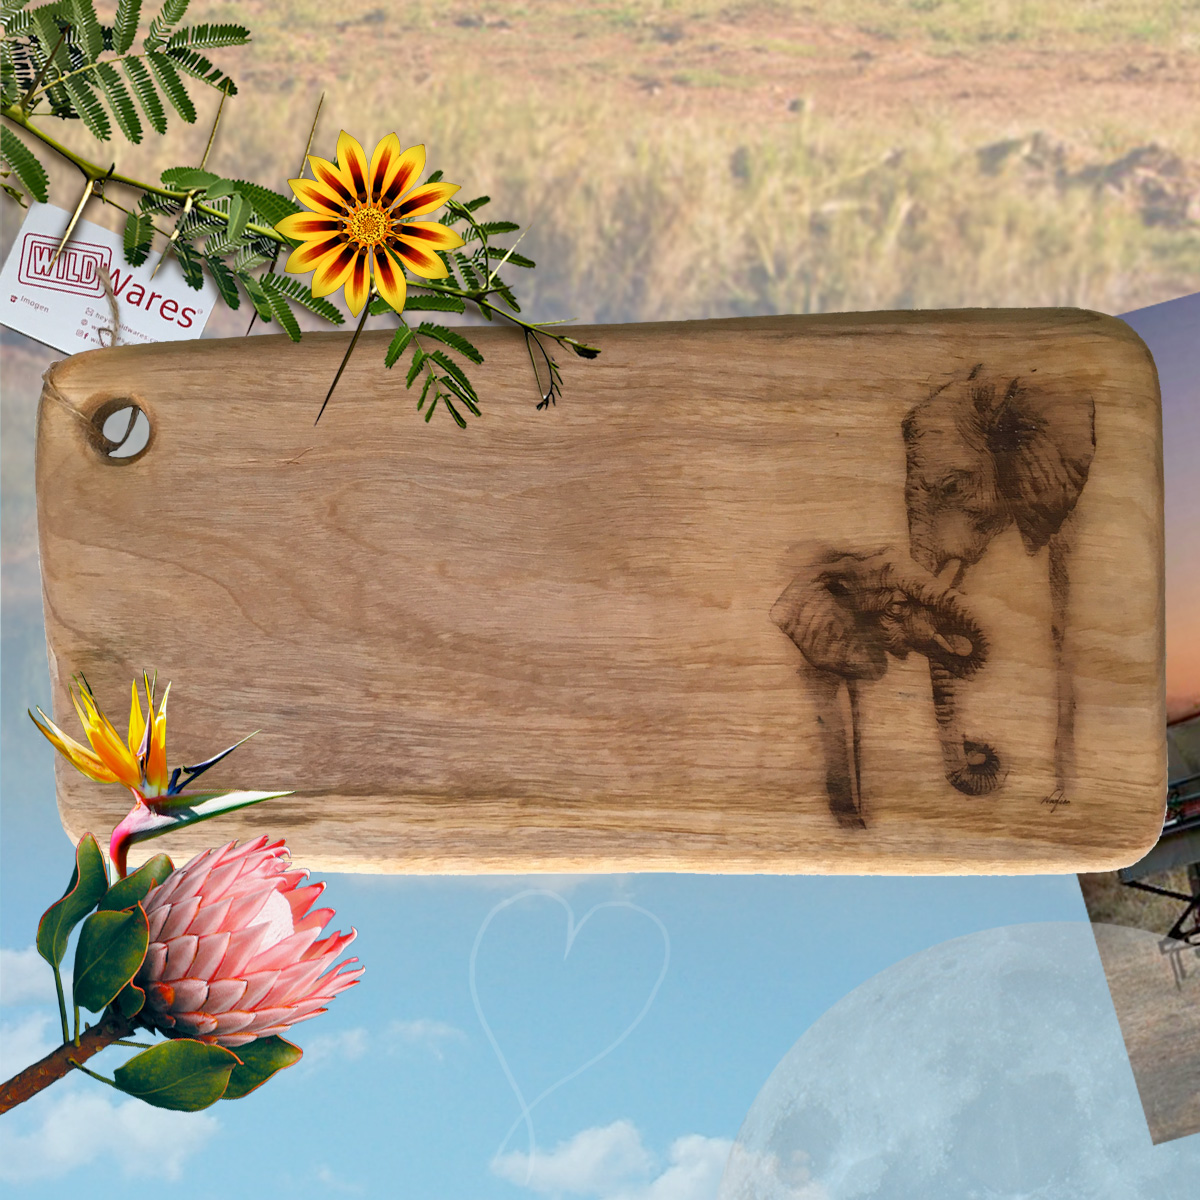 Wild Wares Cutting Boards and Grazing Platters